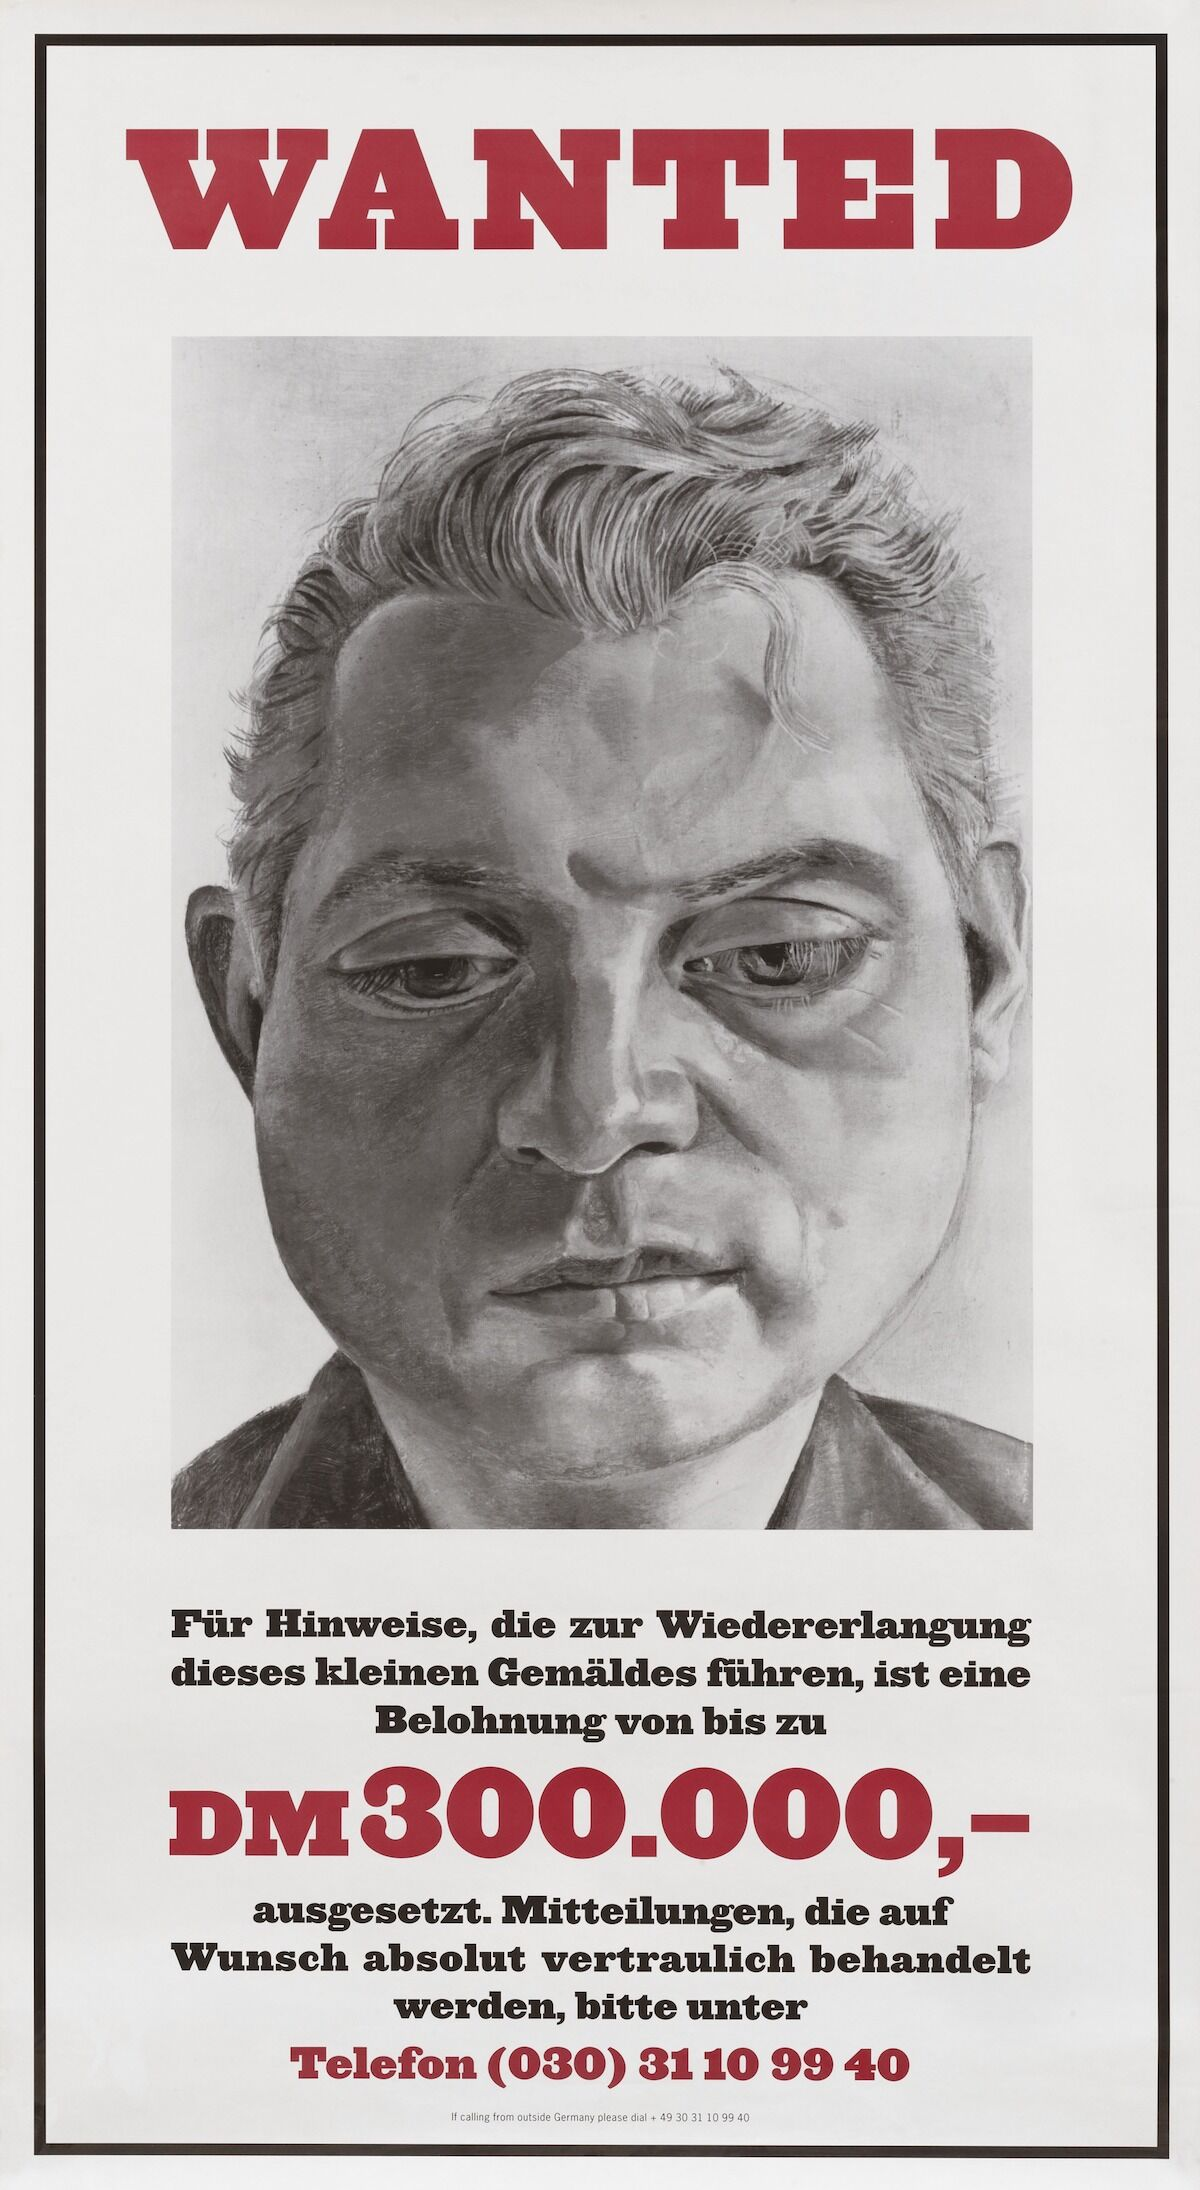 A poster offering a reward for the return of a Lucian Freud painting of Francis Bacon that was stolen in Berlin in 1988. Via New York Studio School.